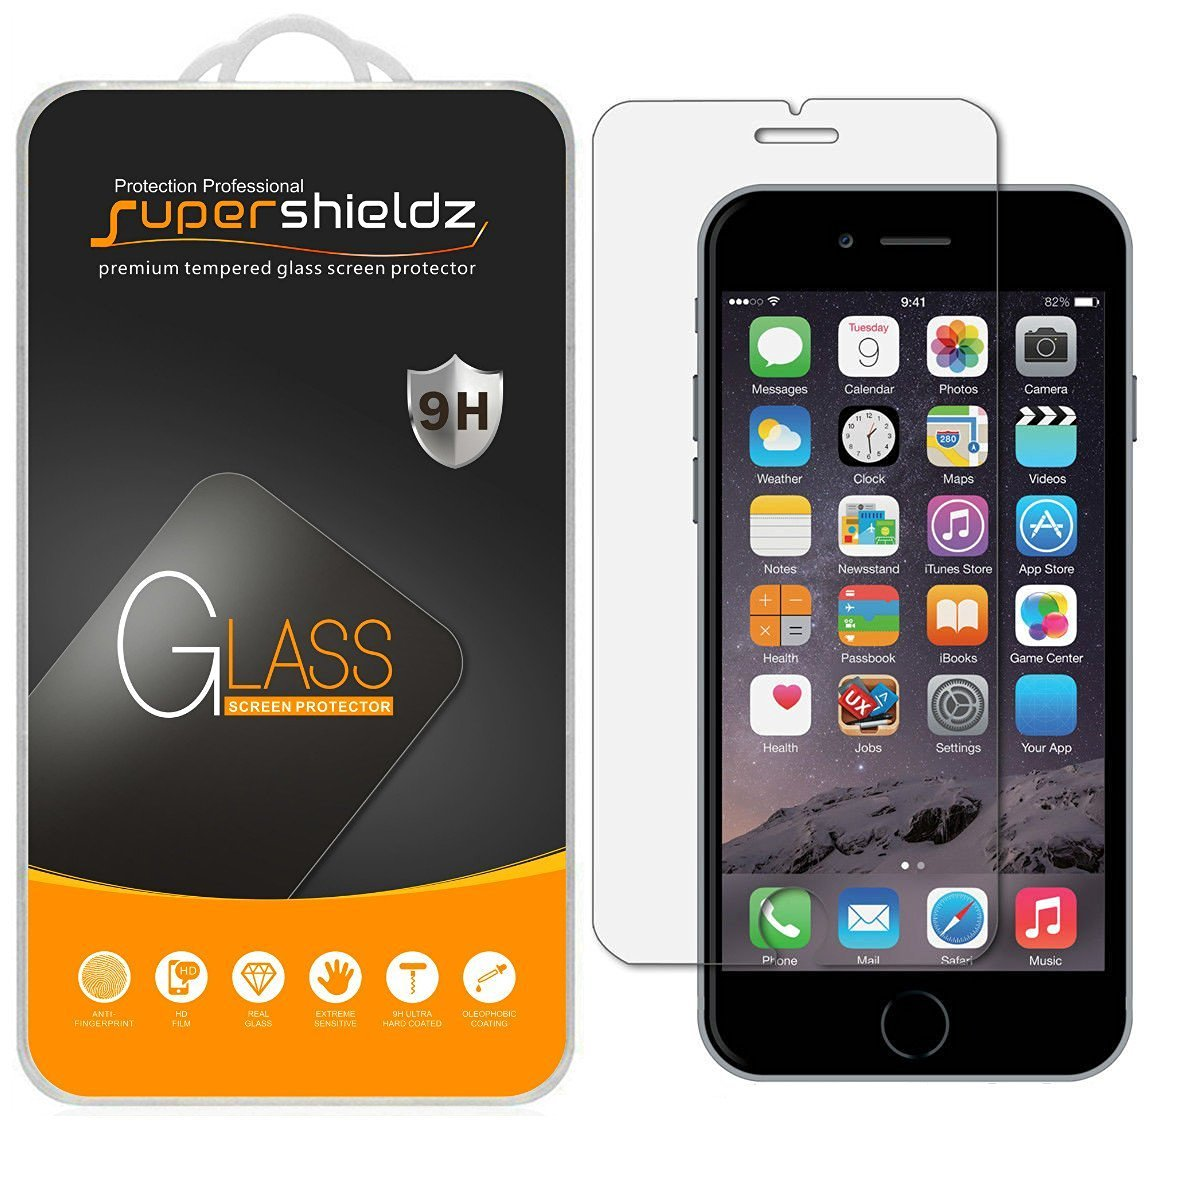 [2-Pack] Supershieldz Apple iPhone 6 Plus / 6S Plus Tempered Glass Screen Protector, Anti-Scratch, Anti-Fingerprint, Bubble Free